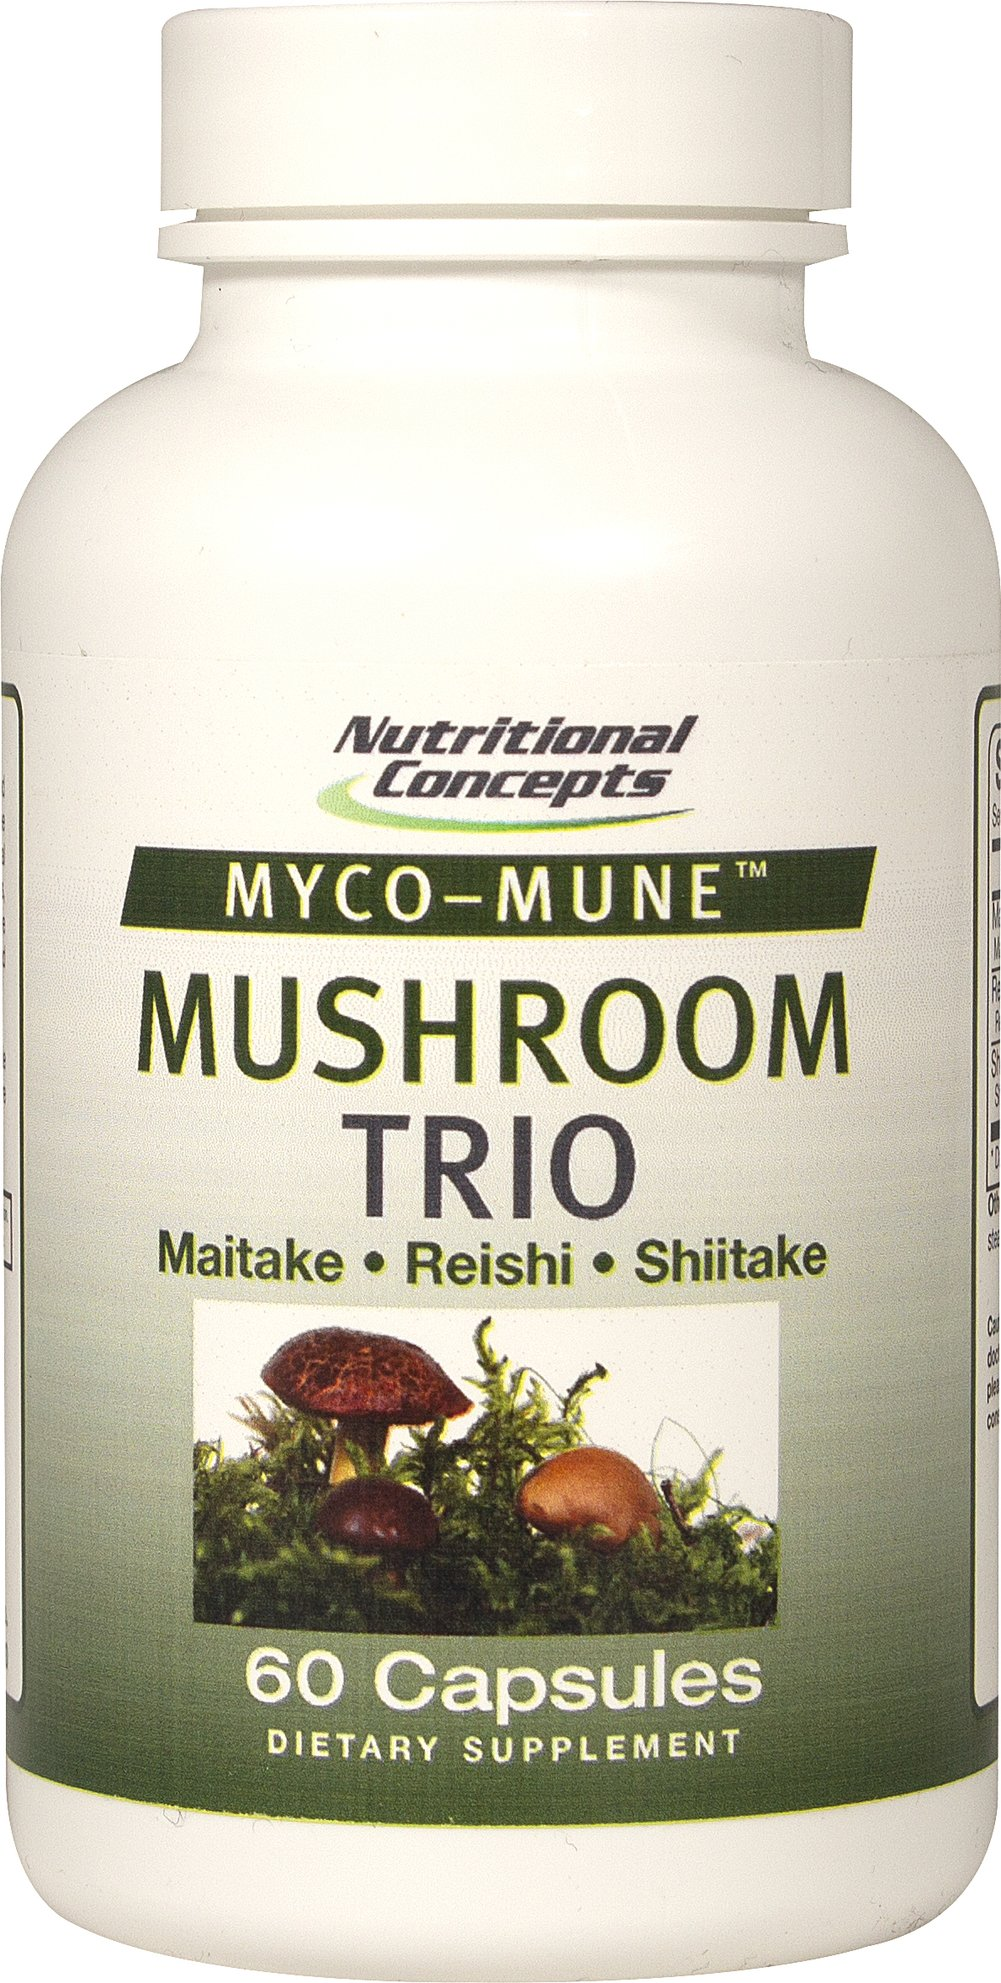 Myco-Mune™ Mushroom Trio Maitake, Reishi, Shiitake <p>Myco-Mune™ Mushroom Trio – is an optimized blend of the worlds finest mushrooms. Mushrooms are a leading source of the essential antioxidant selenium and ergothioneine. Eastern cultures have revered mushrooms health benefits for centuries. </p><p></p> 60 Capsules  $14.49